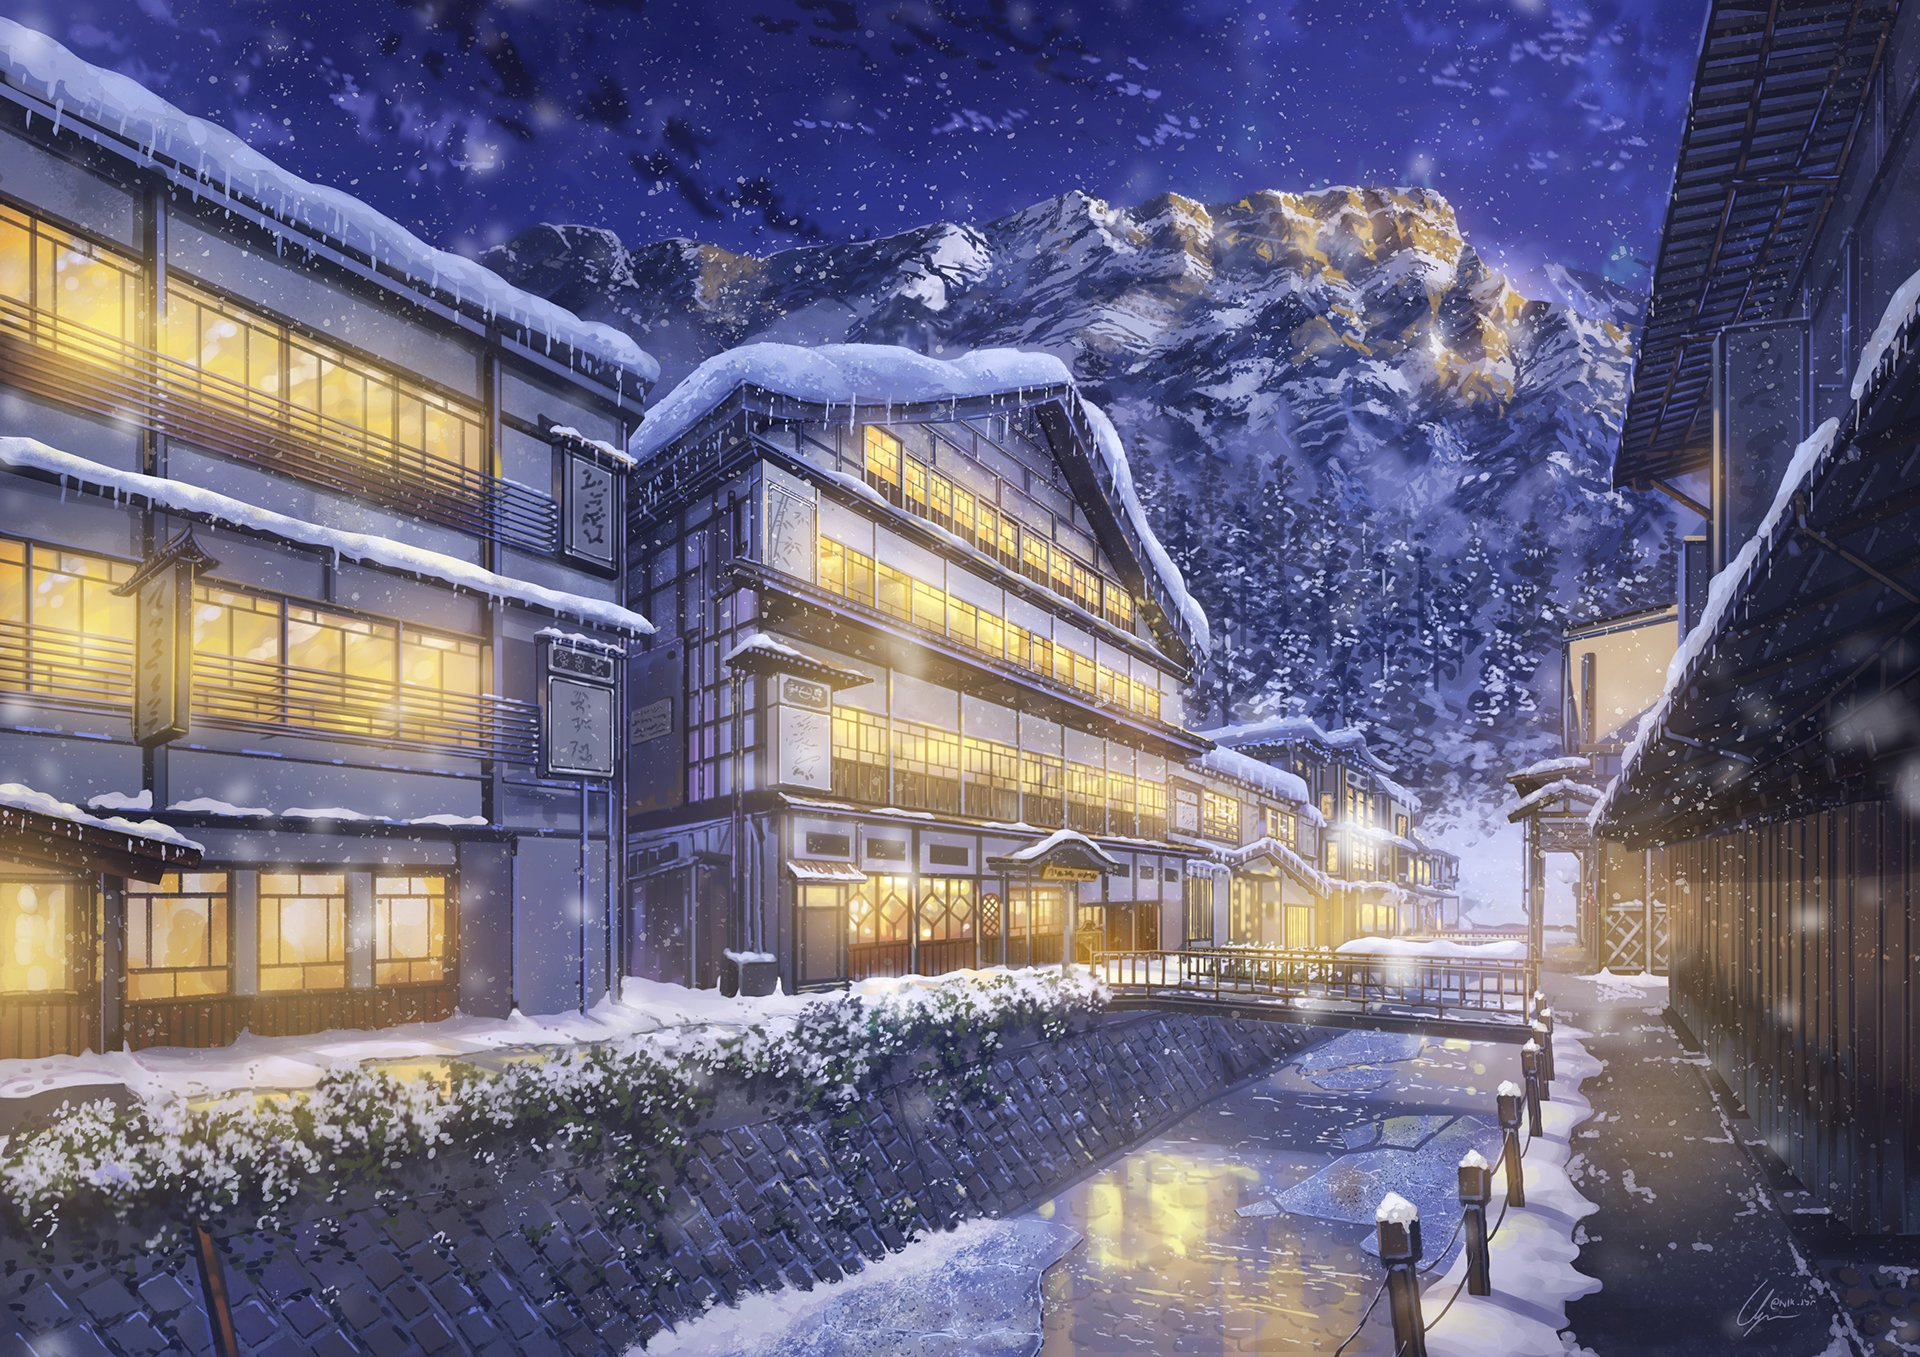 Anime - Original  Winter Building Snow Snowfall House Town Wallpaper